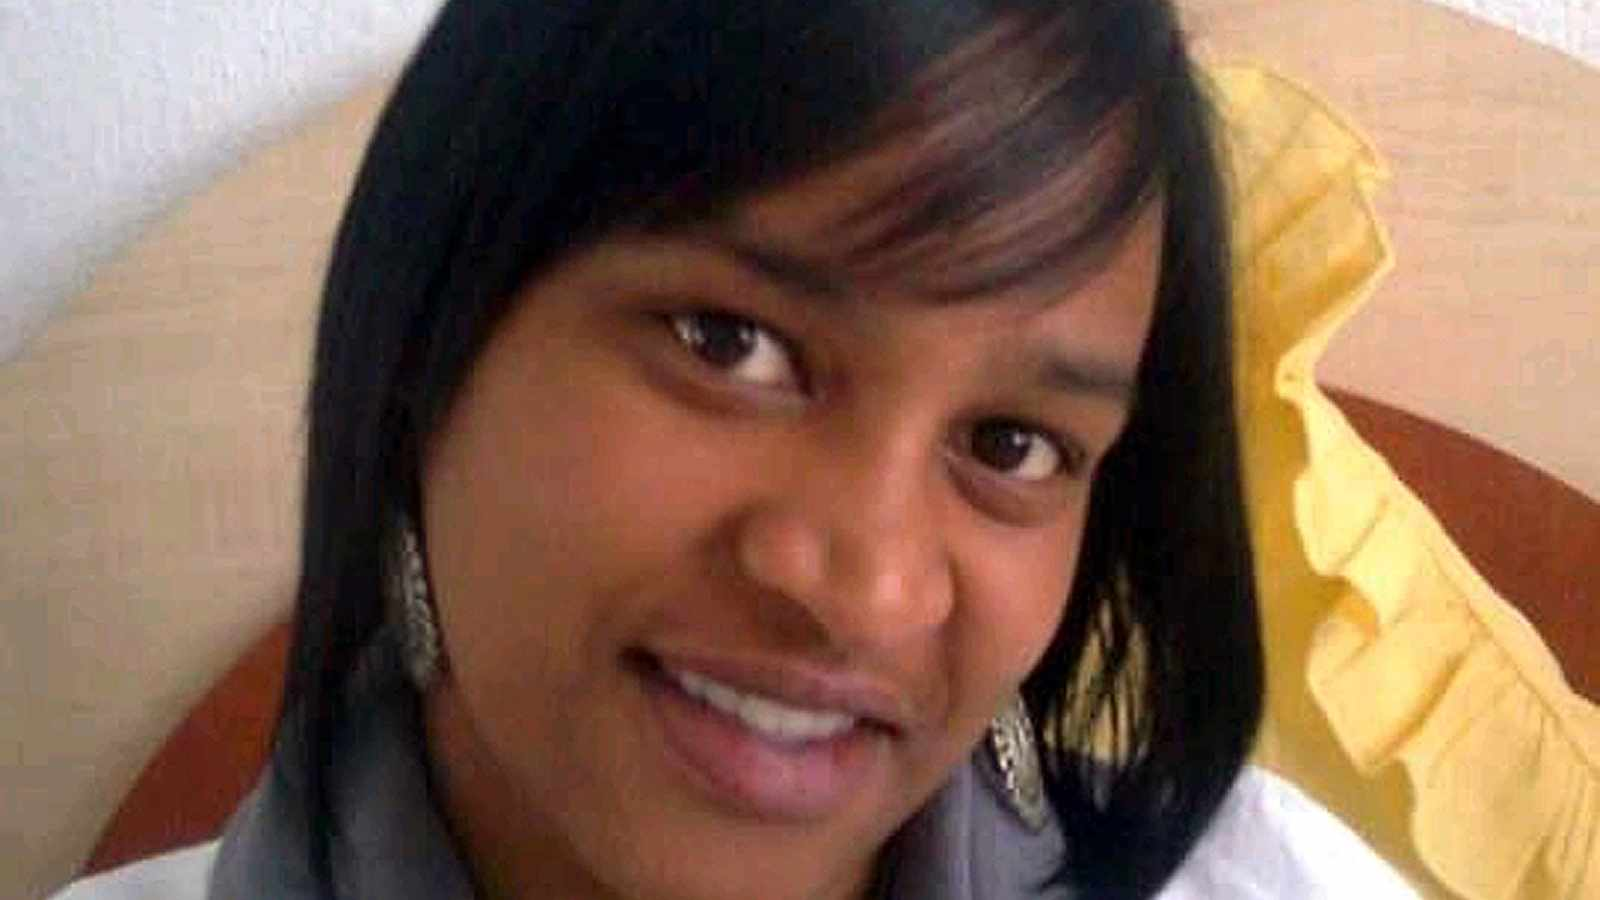 Hit and run 'killer' in court: Pregnant suspect appears after '7 months in hiding'